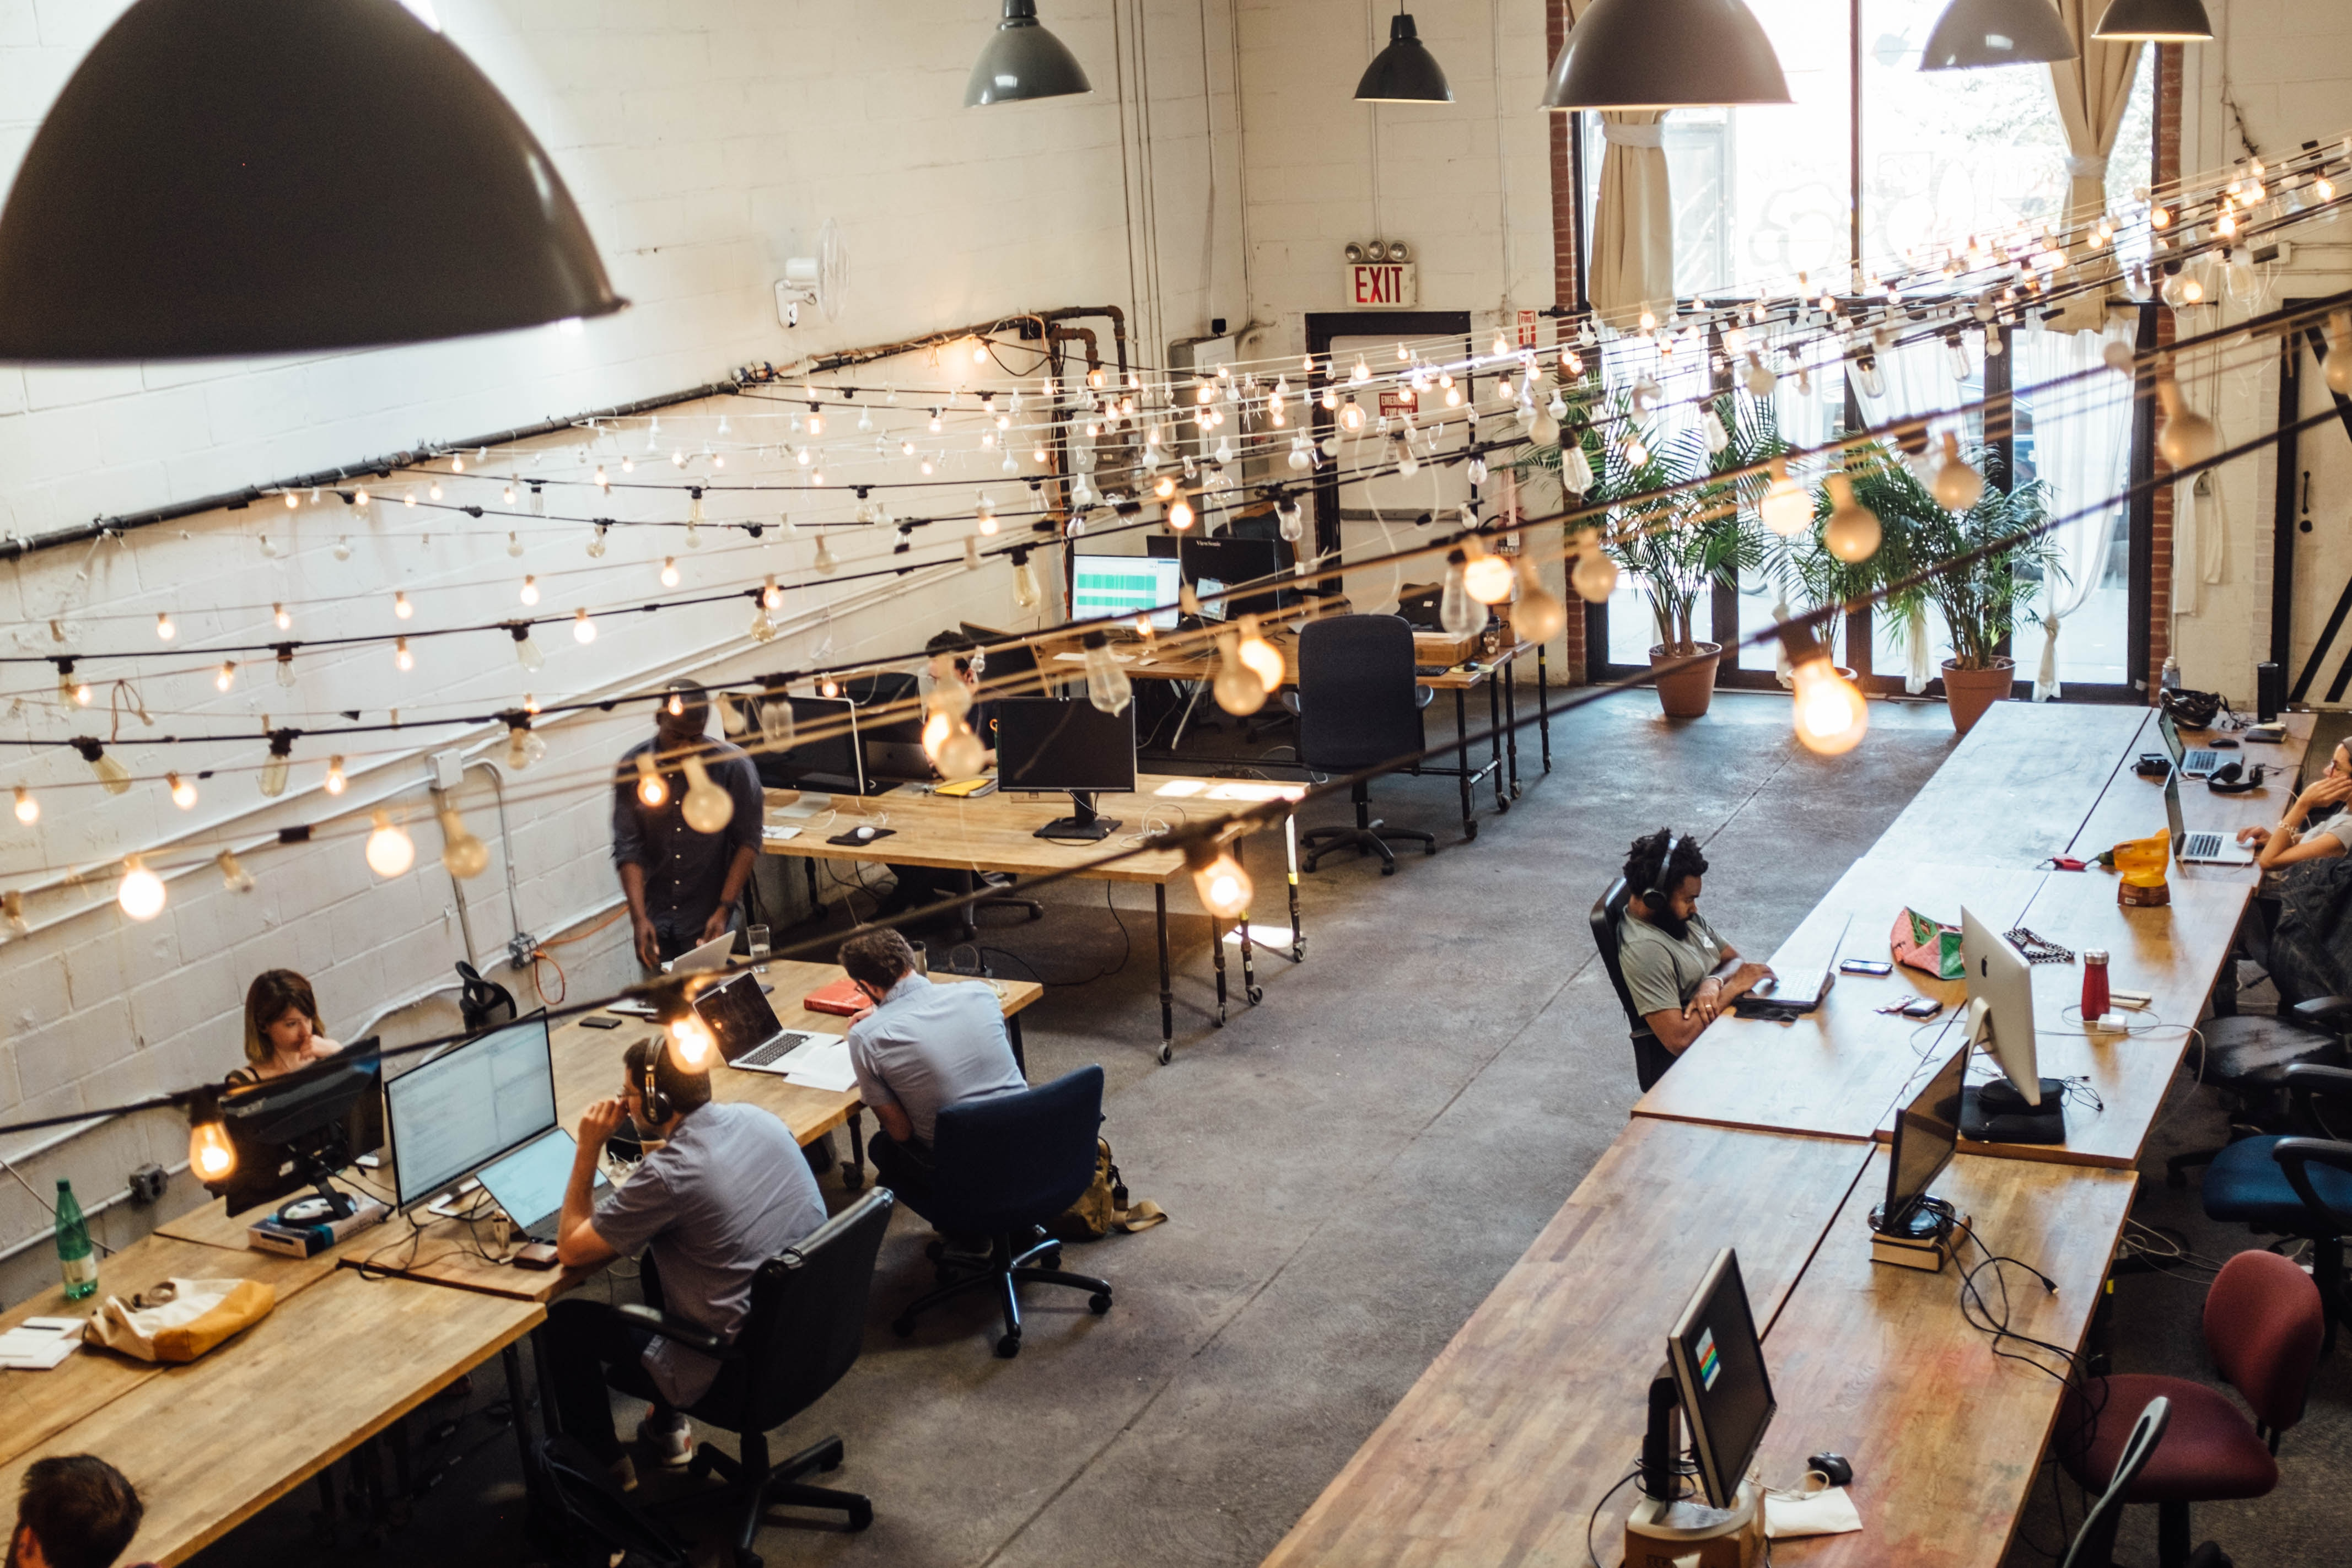 A workspace with modern wood tables. There are no walls or separation between workers. There are lights strung across the ceiling.